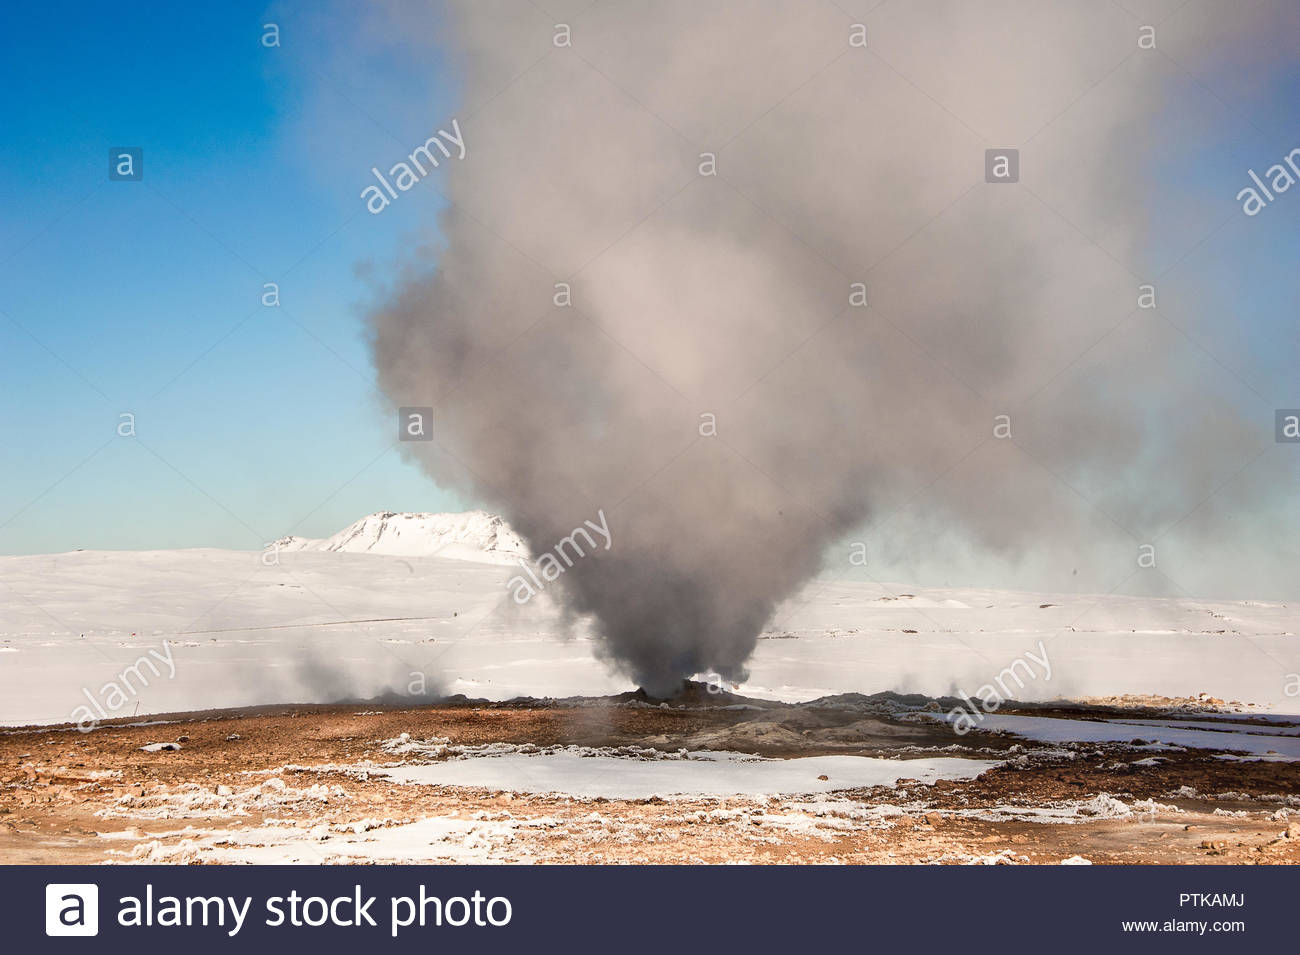 Giant smoke plume rises from a fumarole in Hverir geothermal area 1300x955